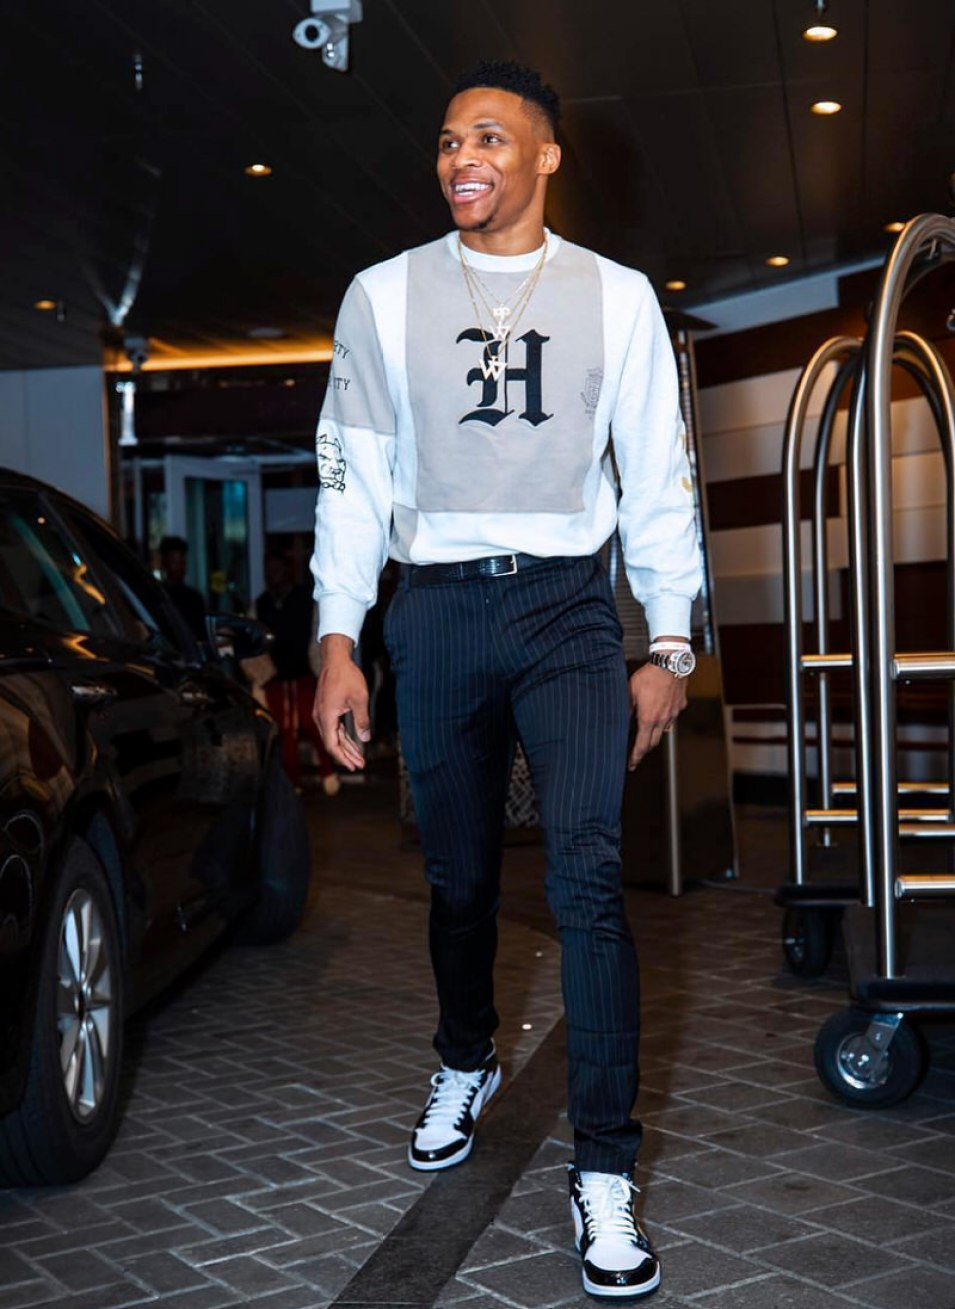 bfd89c15aba7 Russell Westbrook in the Air Jordan 1 Mid White-Black-Gold ...